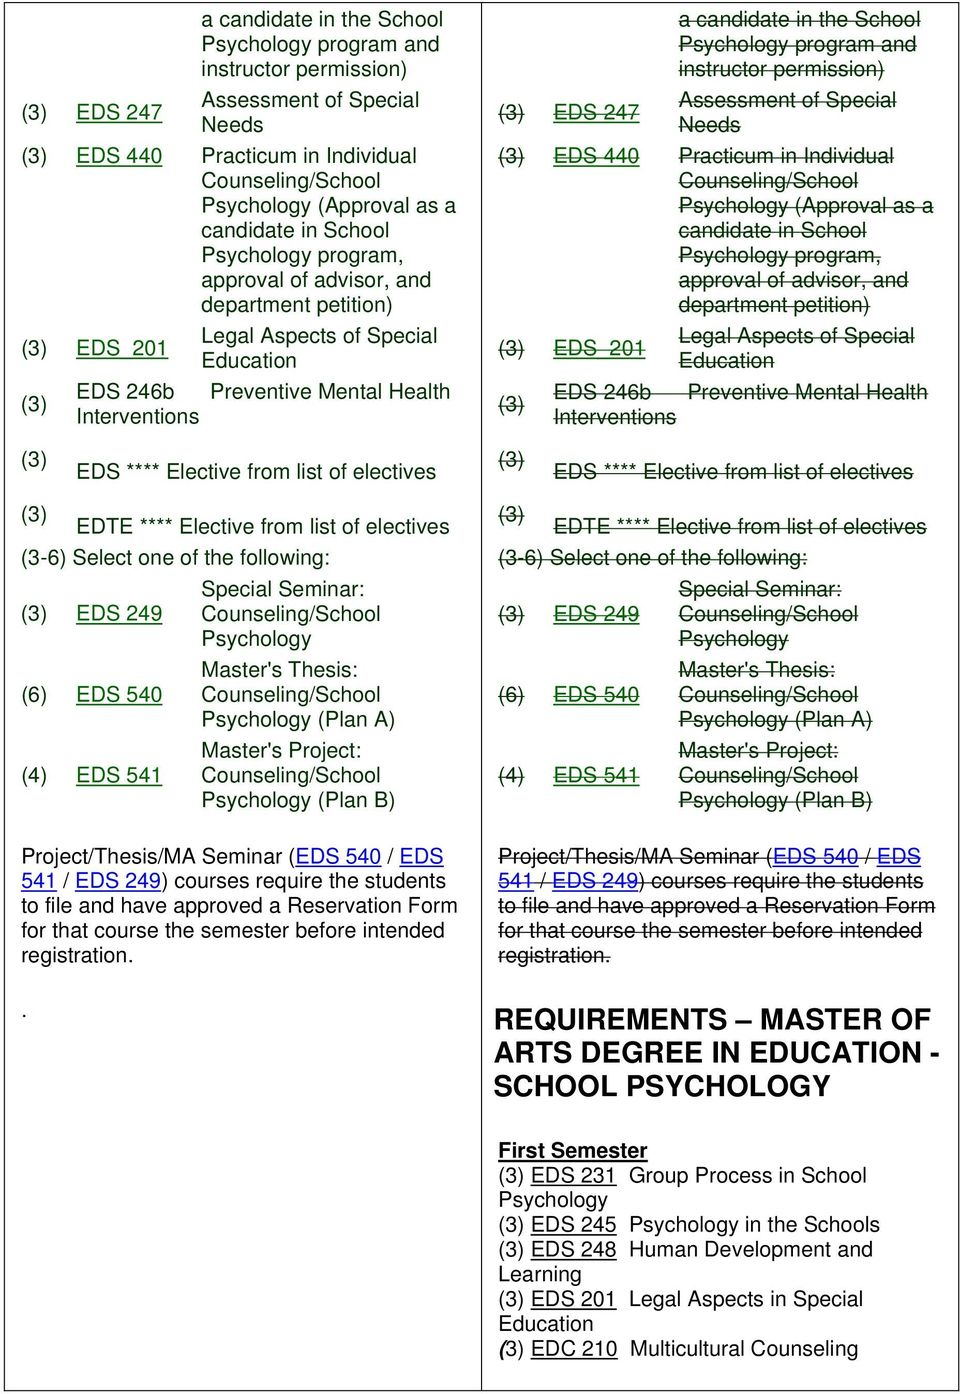 School Psychology program, approval of advisor, and department petition) (3) EDS_201 Legal Aspects of Special Education (3) EDS 246b Preventive Mental Health Interventions (3) EDS **** Elective from